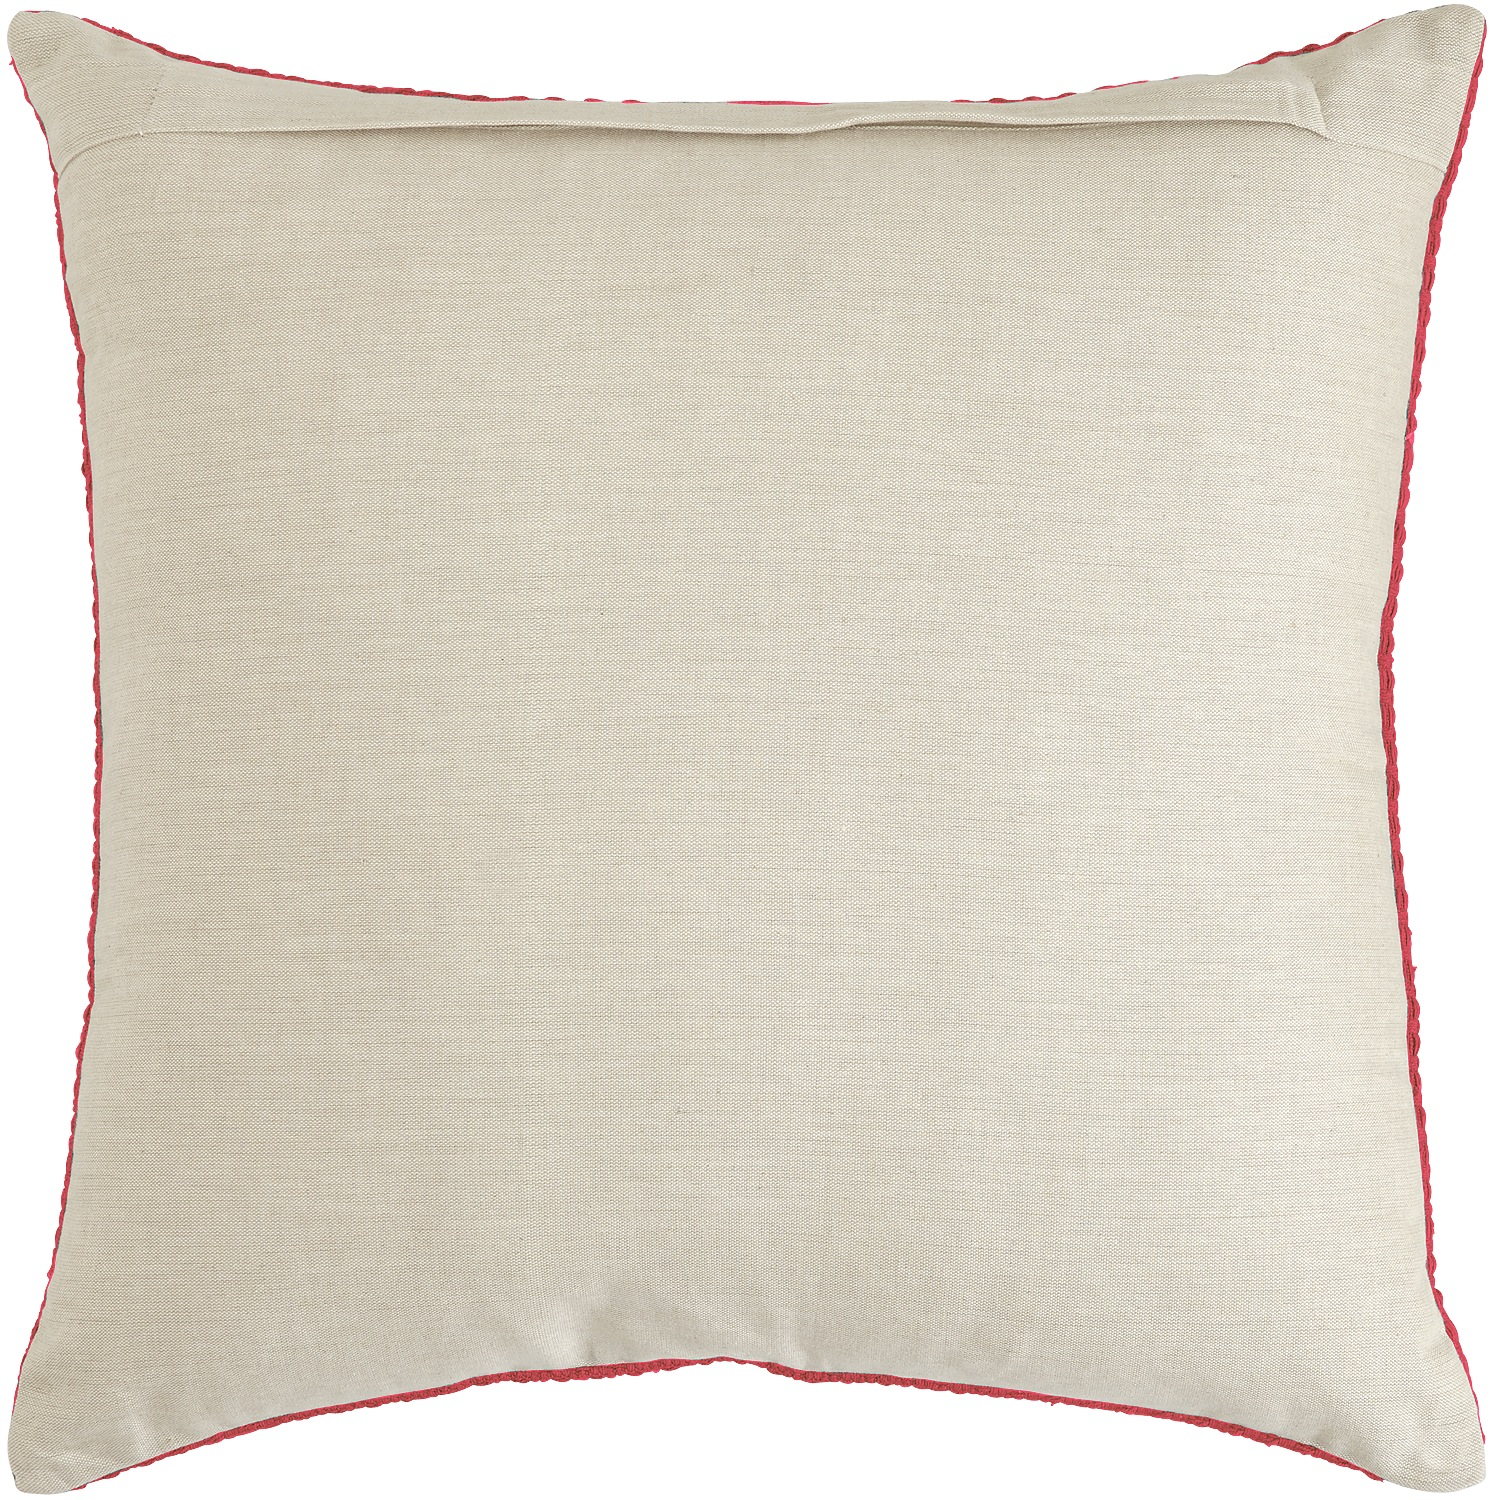 Raleigh Red Pillow